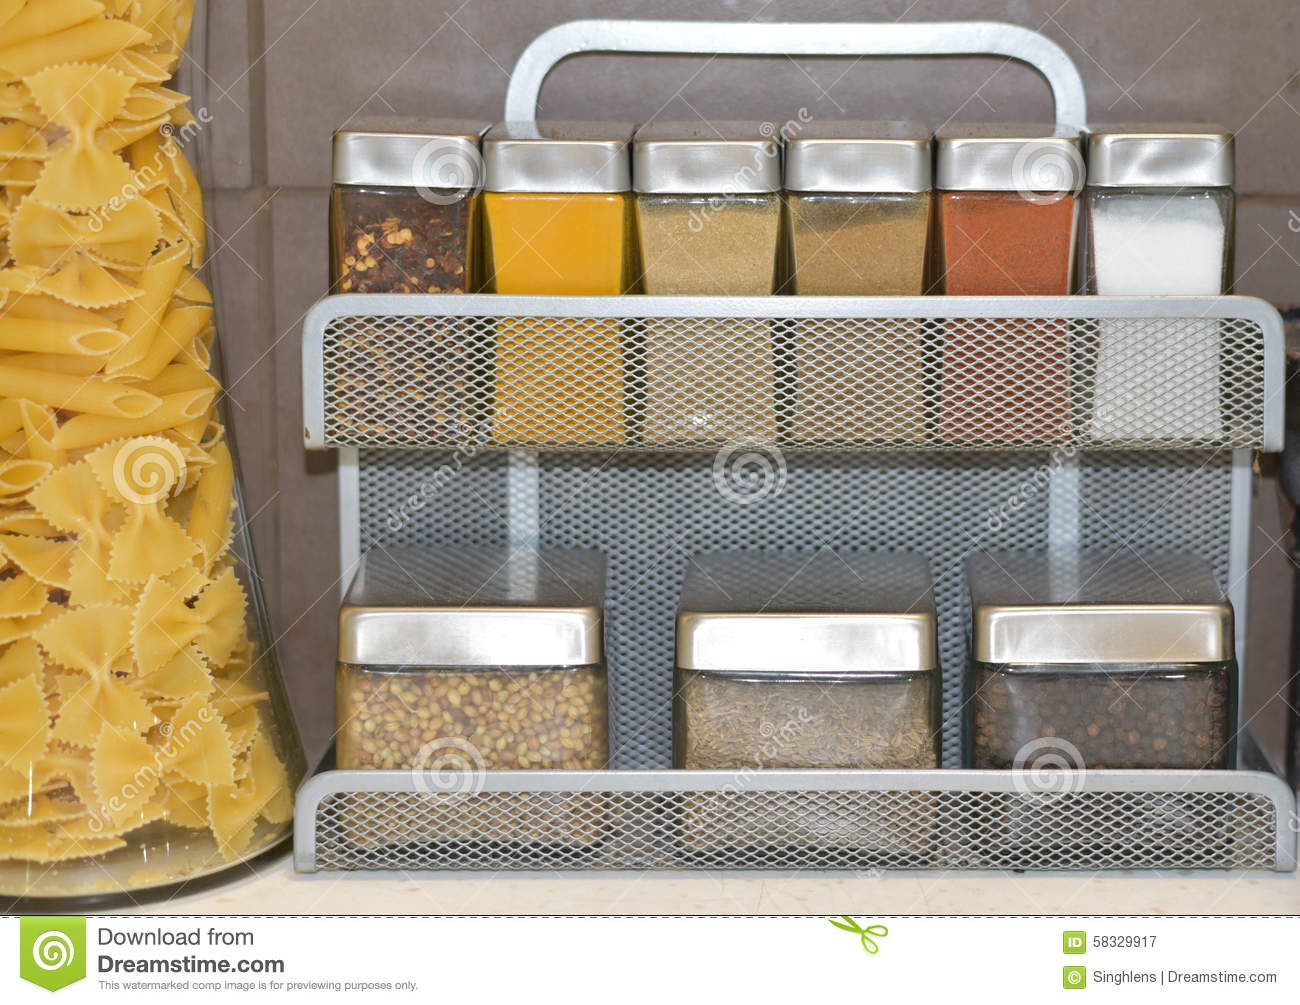 small glass jars with spices and other kitchen condiments on a condiments glass jars kitchen